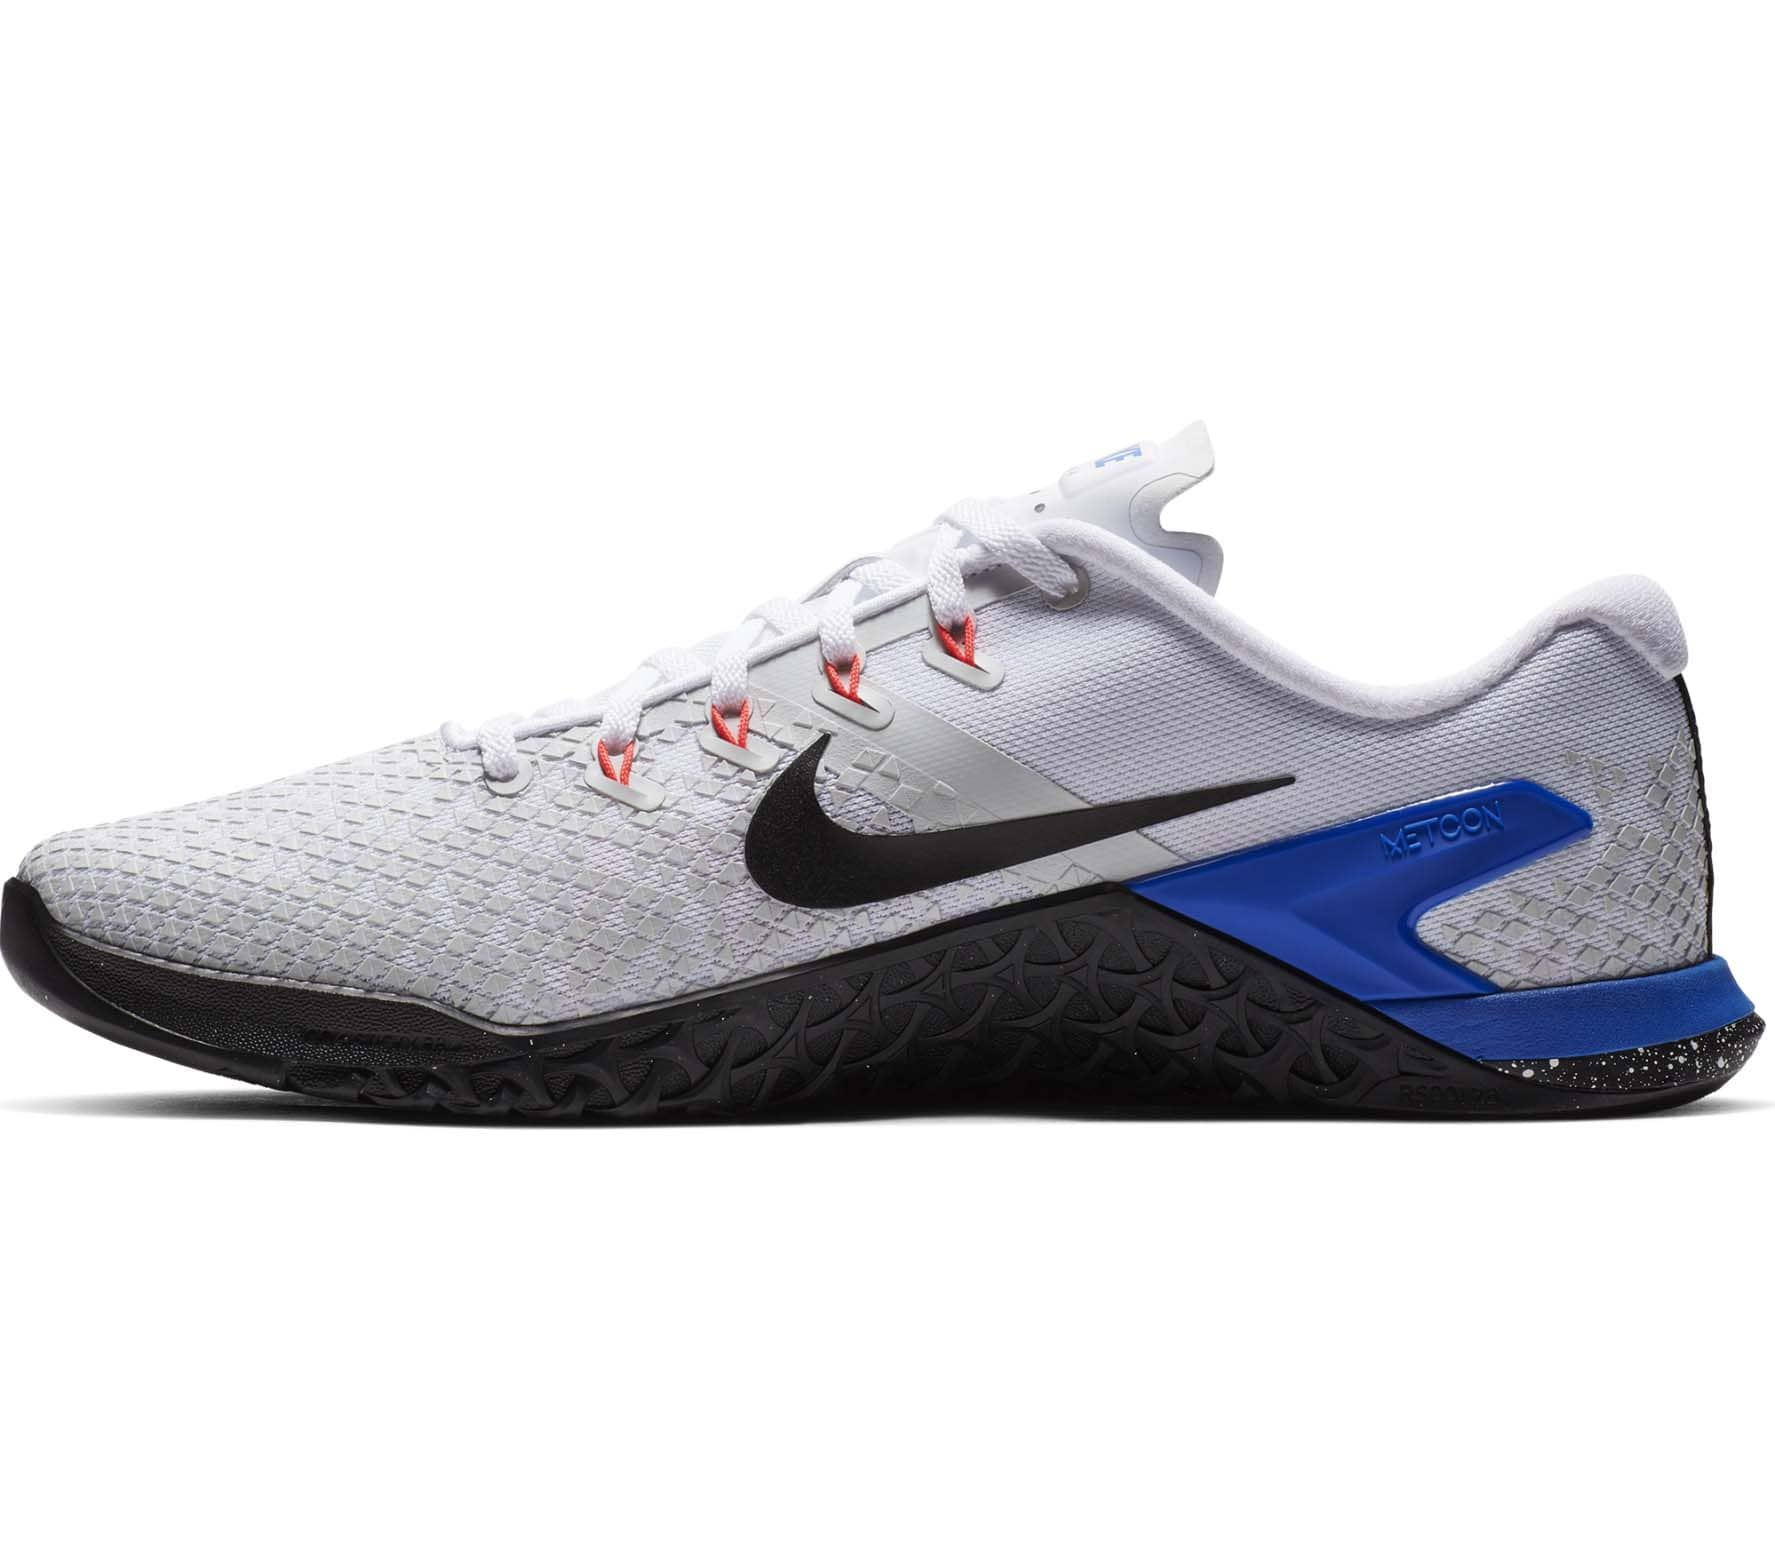 release date 9ccfb 9d743 Nike - Metcon 4 XD Hommes Chaussure d